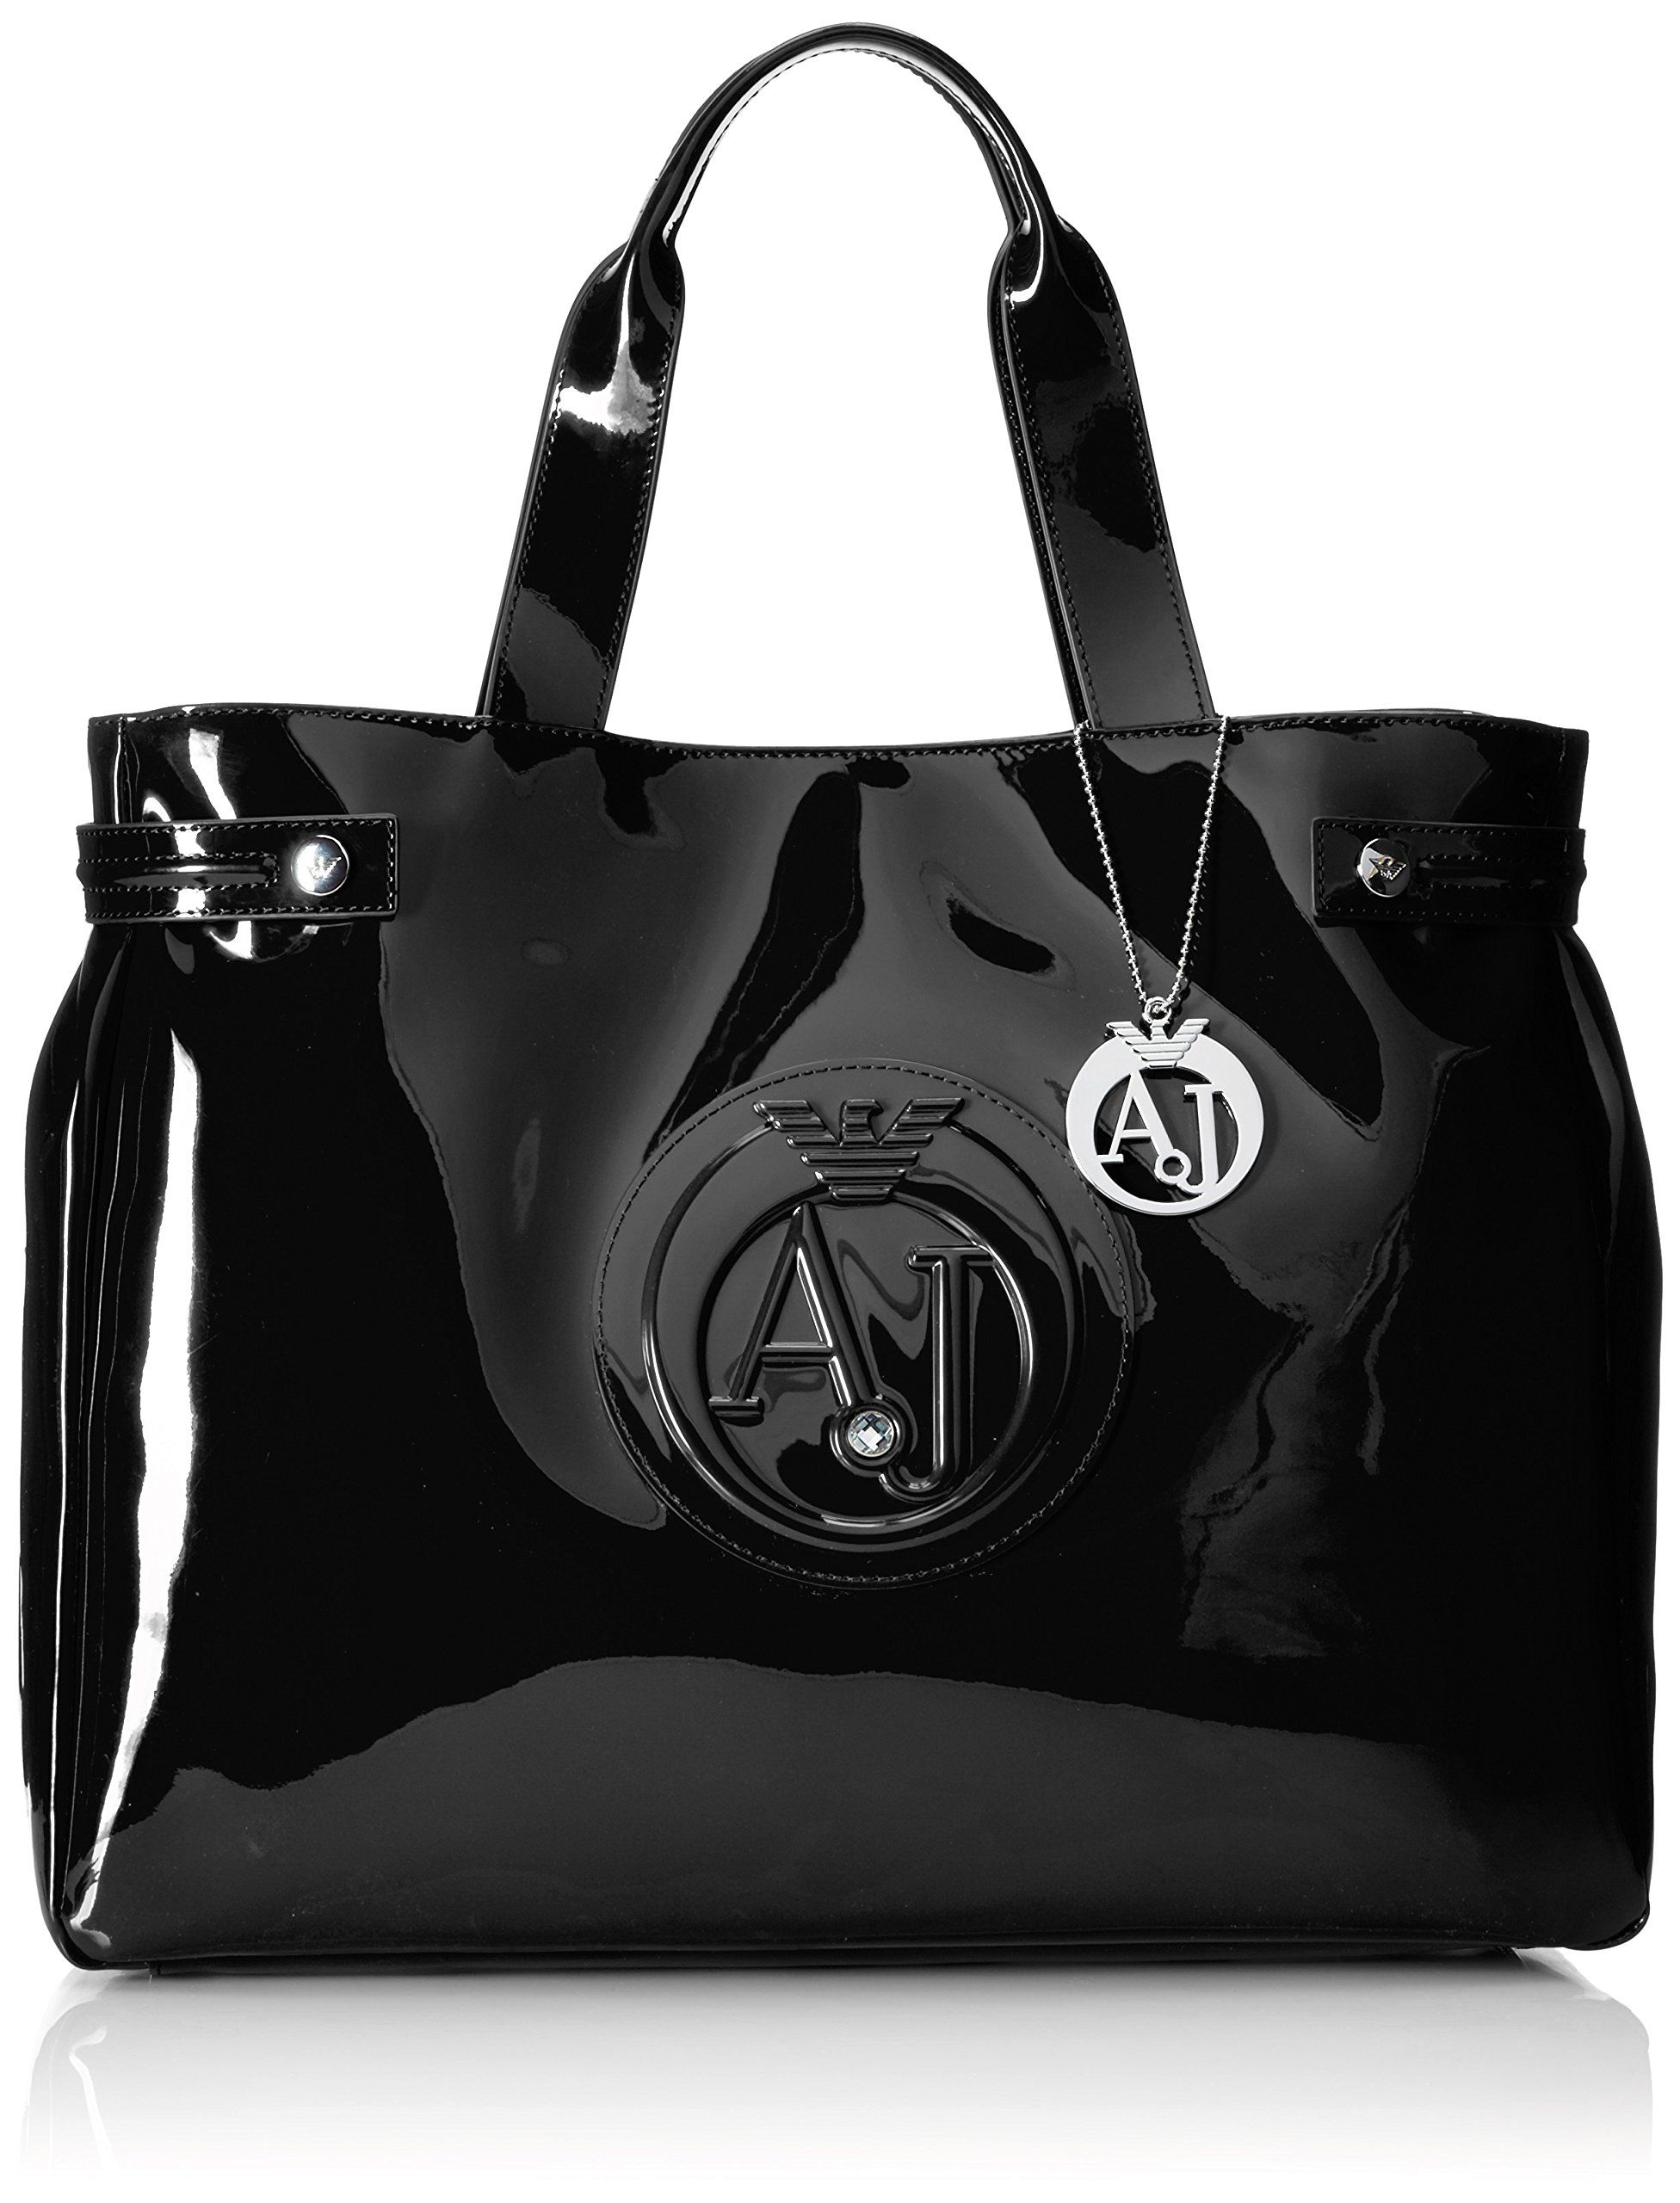 Armani Jeans 55 Crystal Patent Tote Bag, Black, One Size